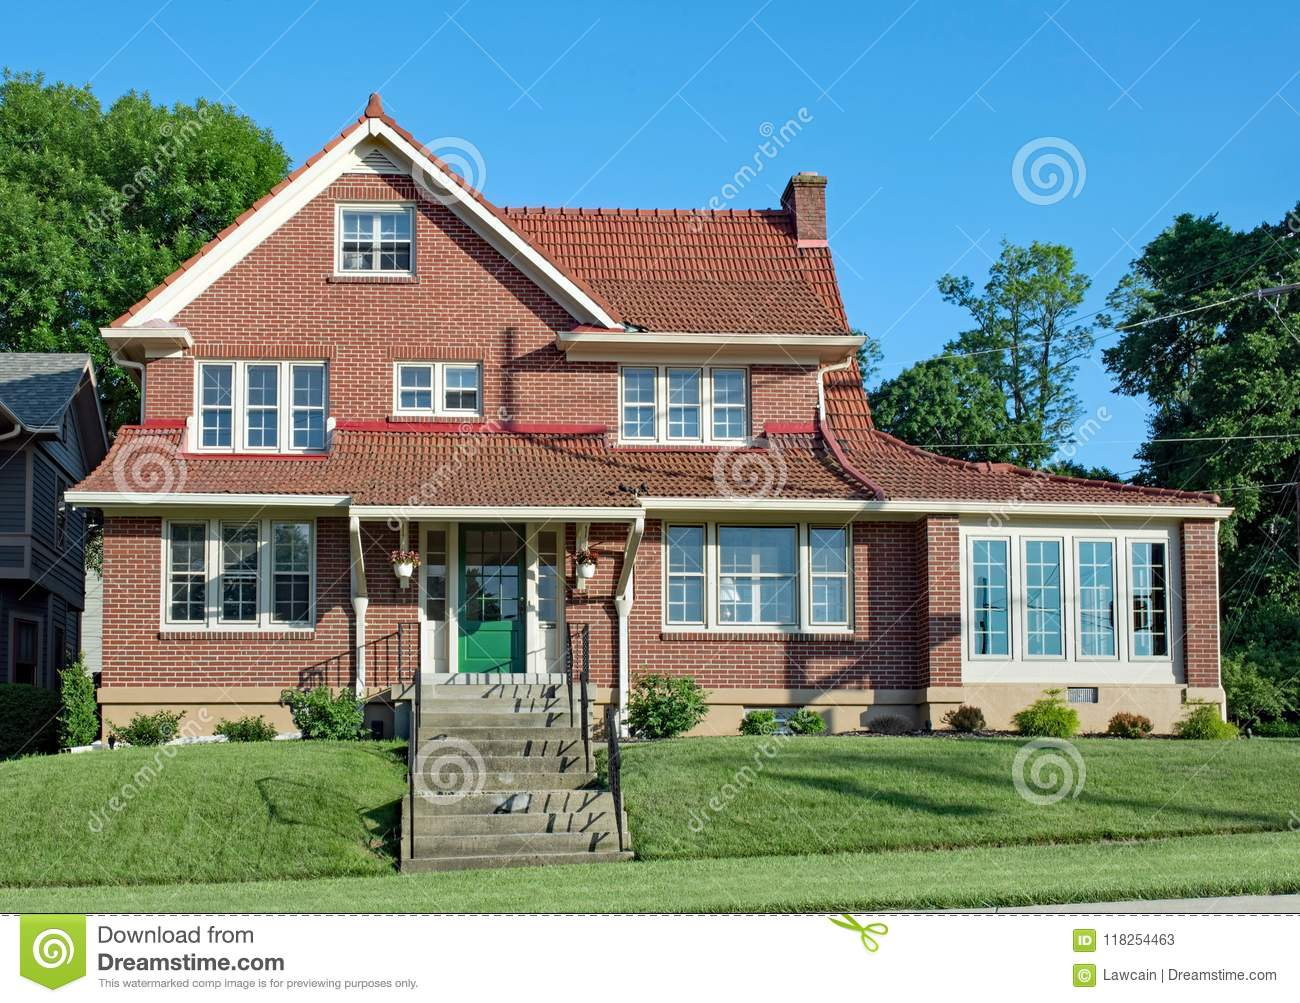 Large red brick house with red tile roof